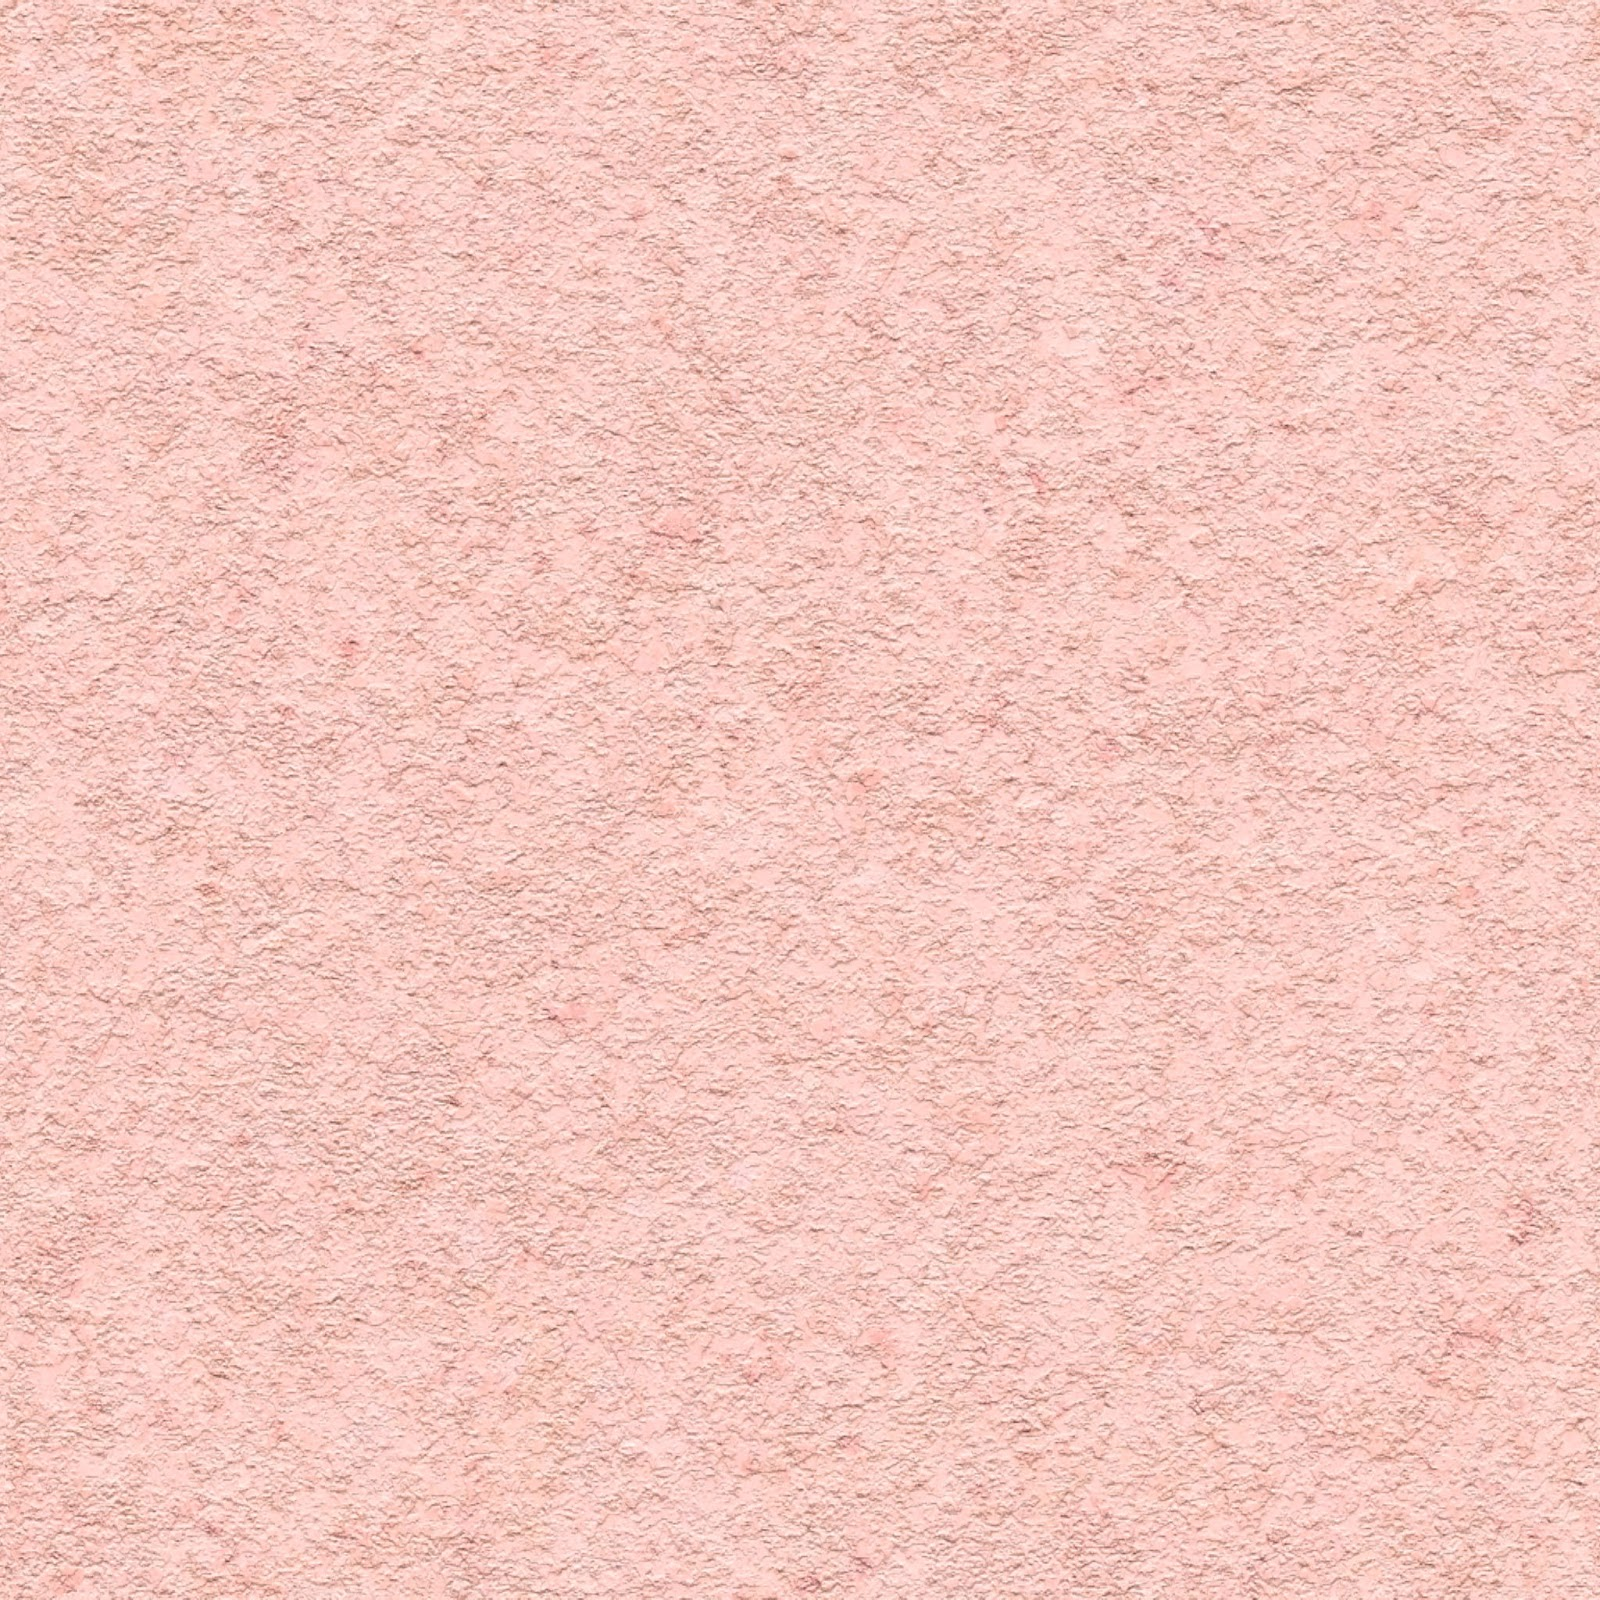 Rough_dirty_stucco_pink_paint_plaster_wall_texture_seamless_tileable